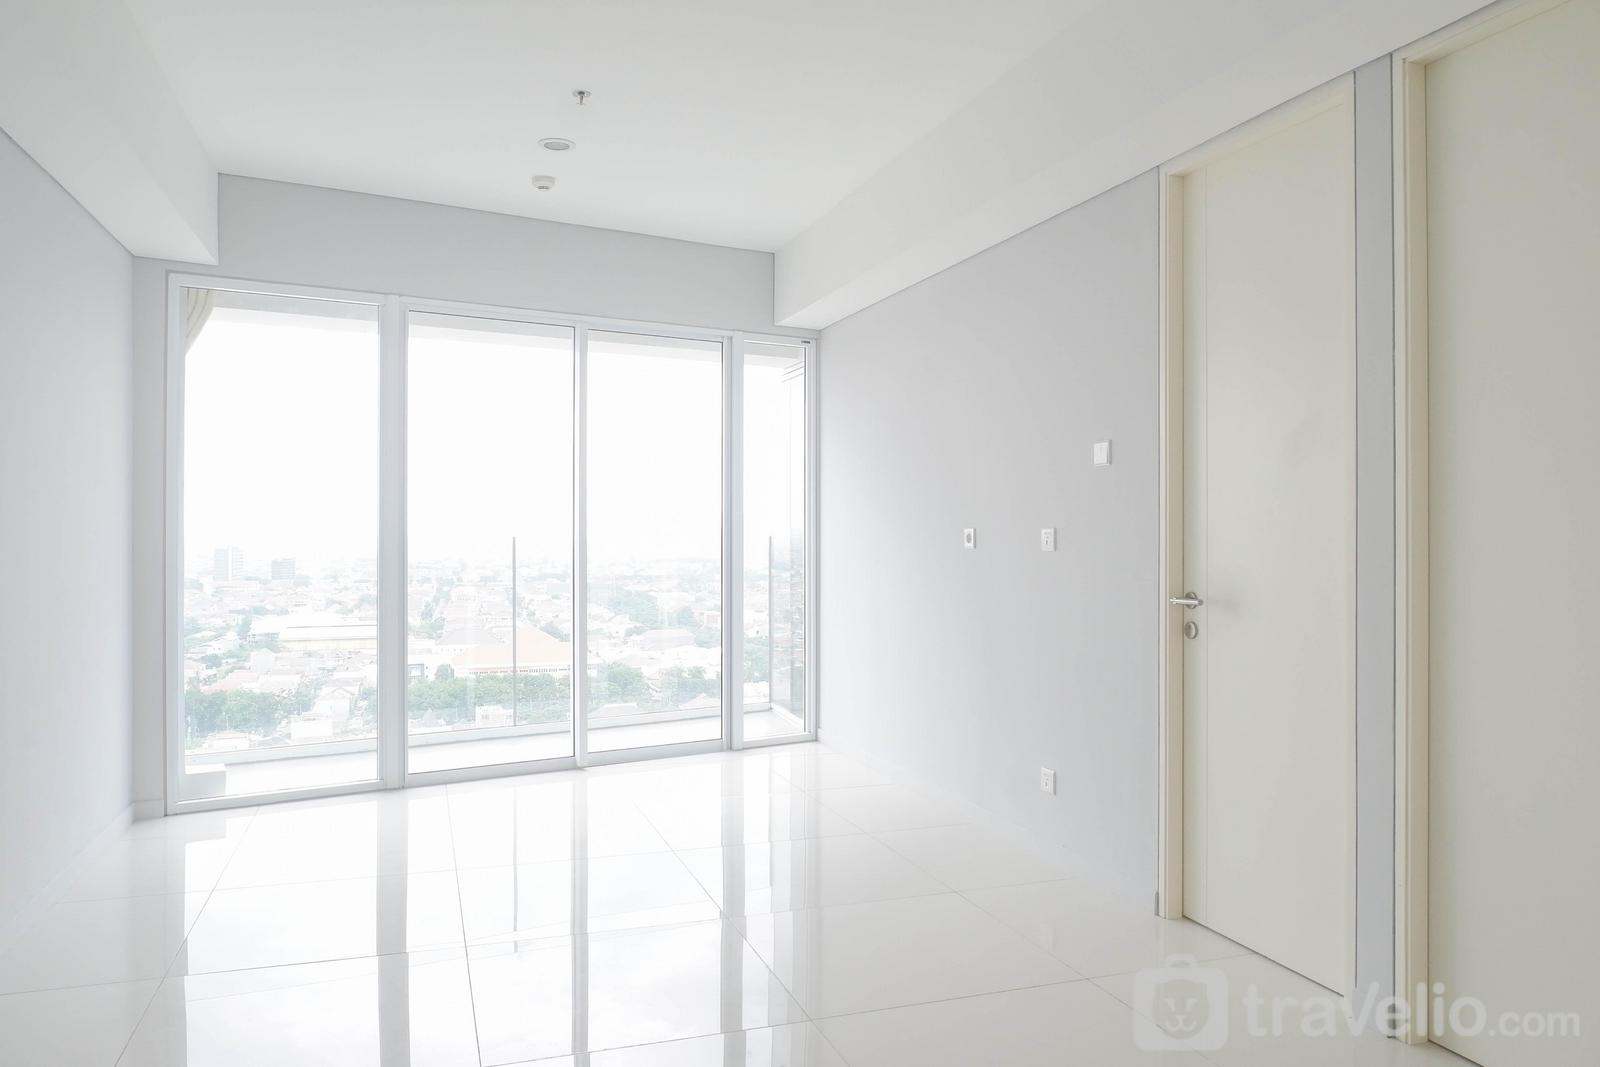 Apartemen Belleview Residence - Unfurnished Elegant 2BR Apartment with City View at Belleview Residence by Travelio